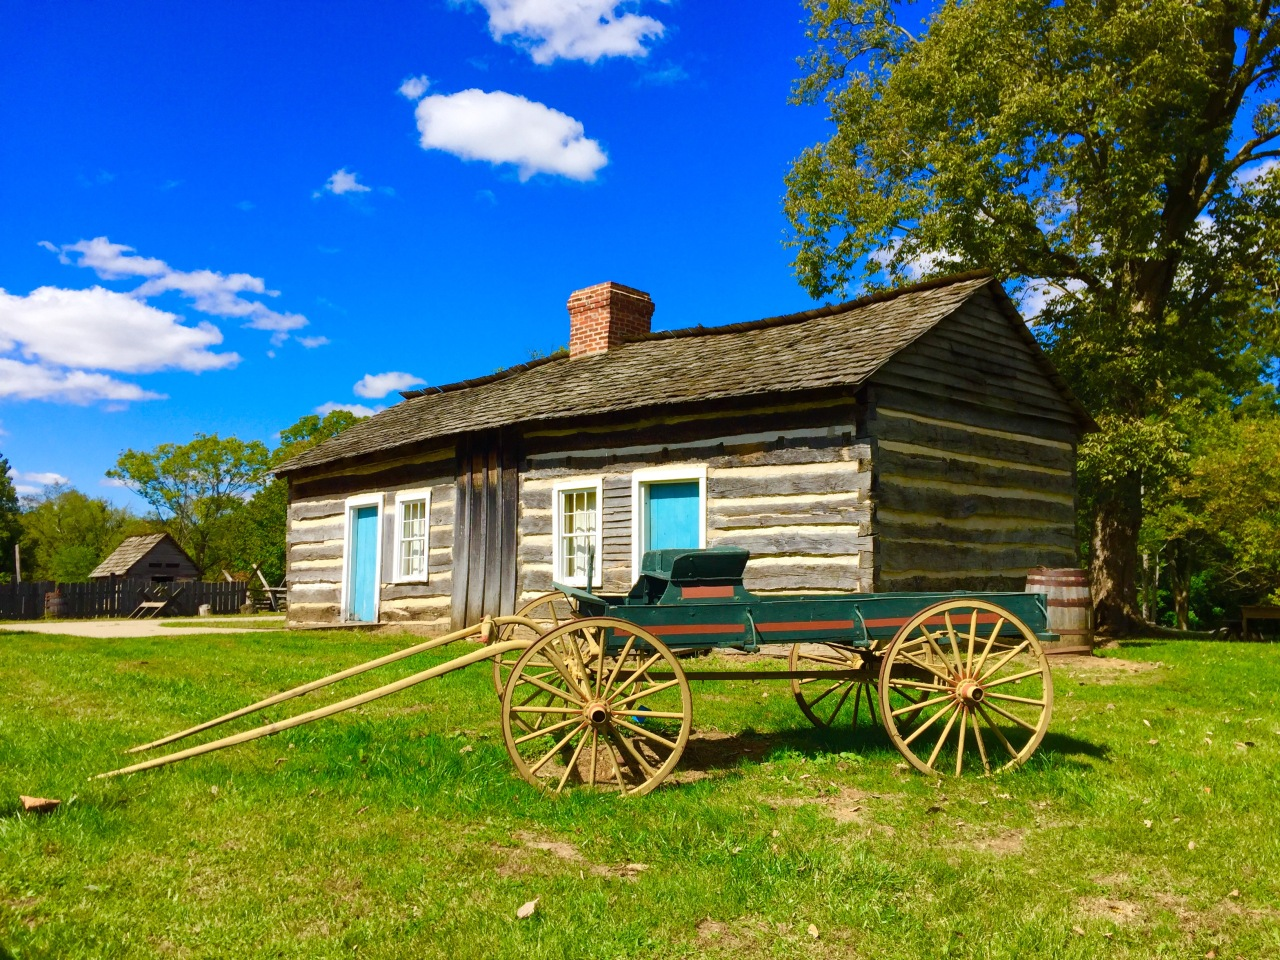 Lincoln Log Cabin State Historic Site – Illinois